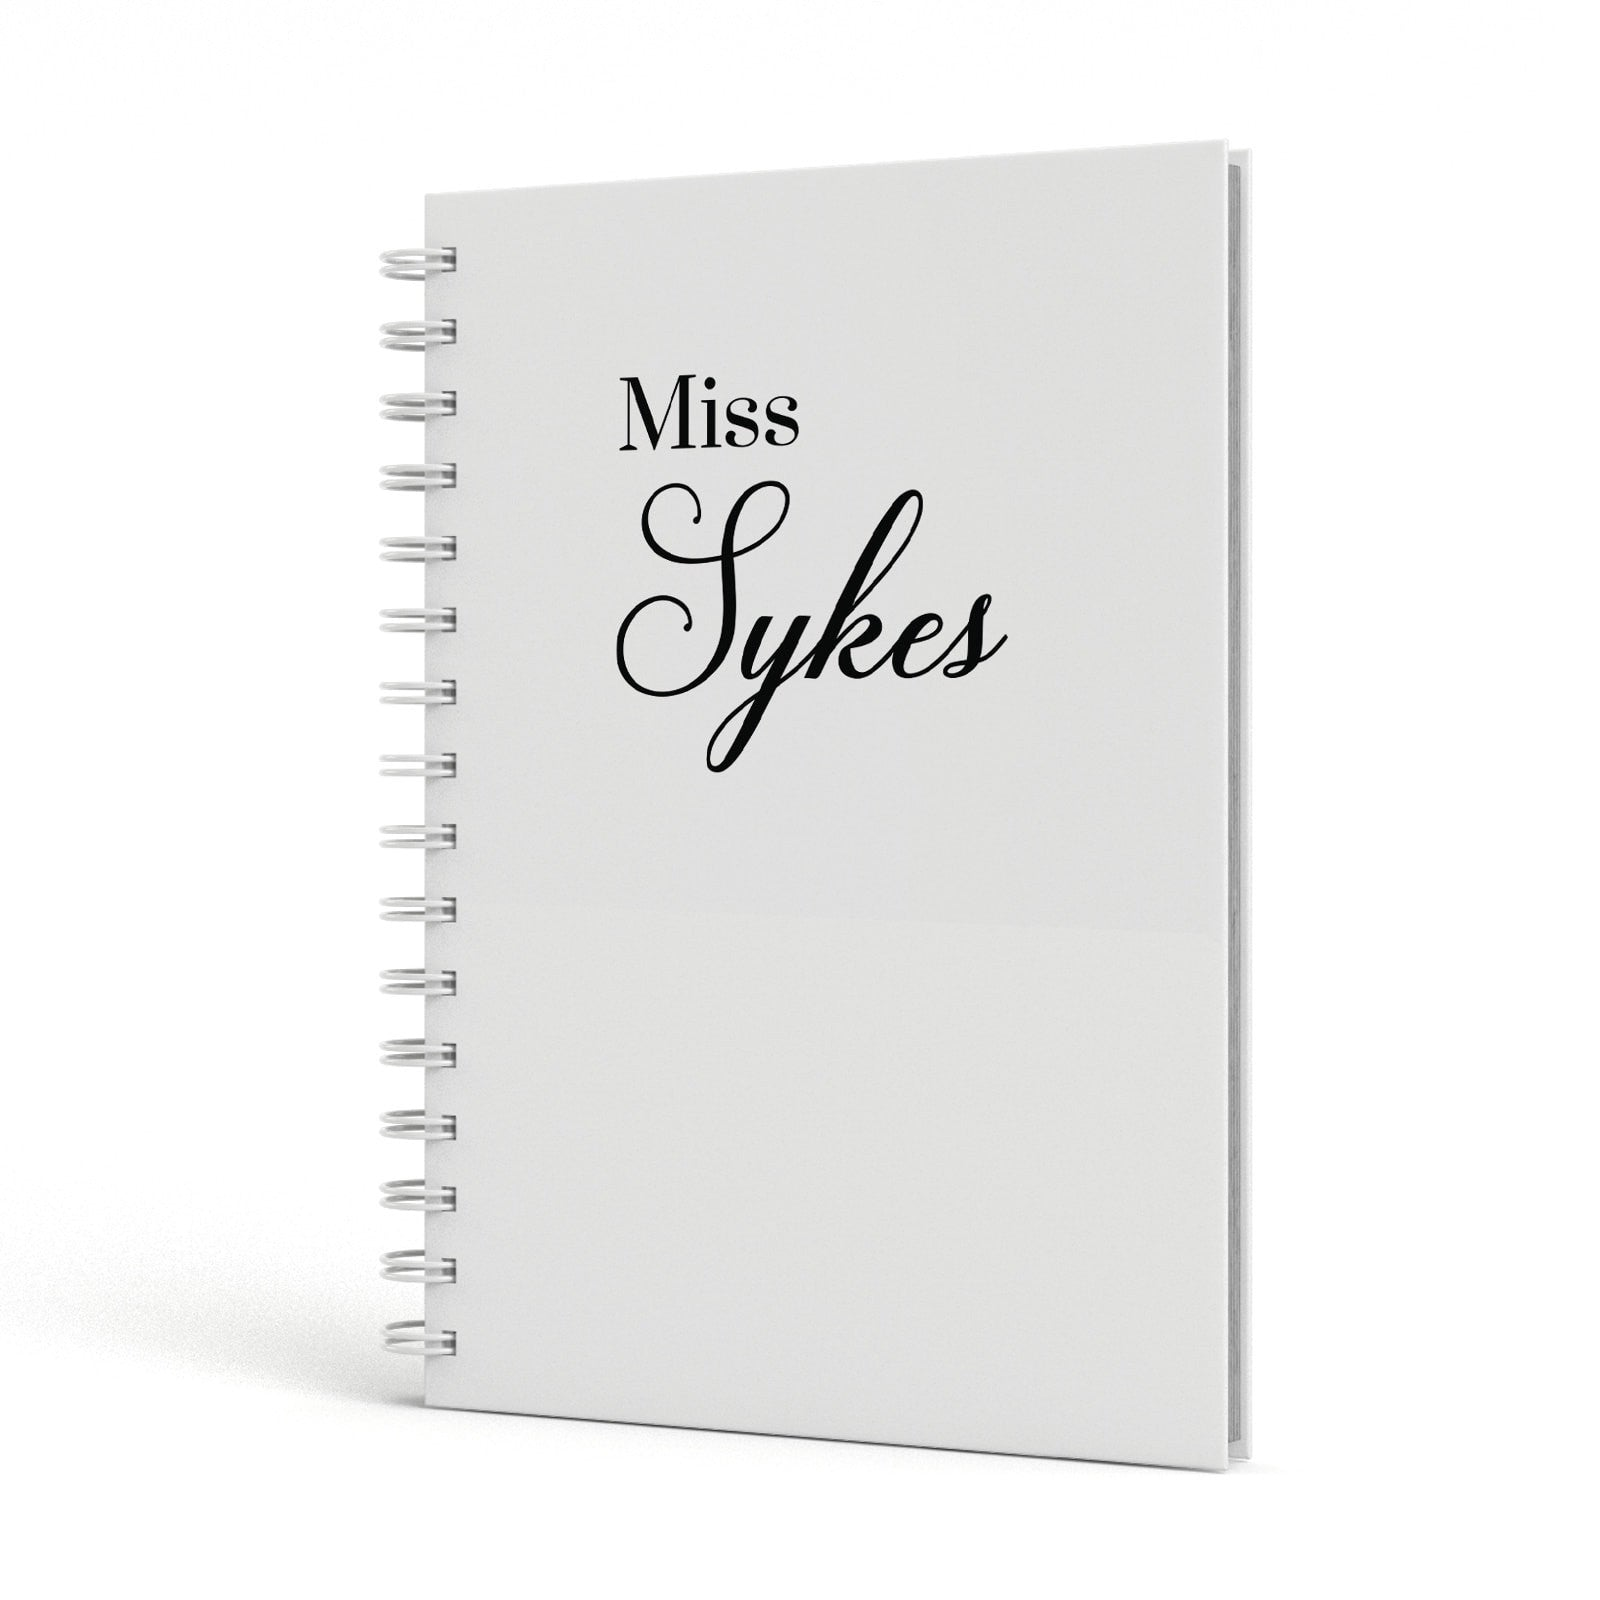 Personalised Wedding Name Miss A5 Hardcover Notebook Side View